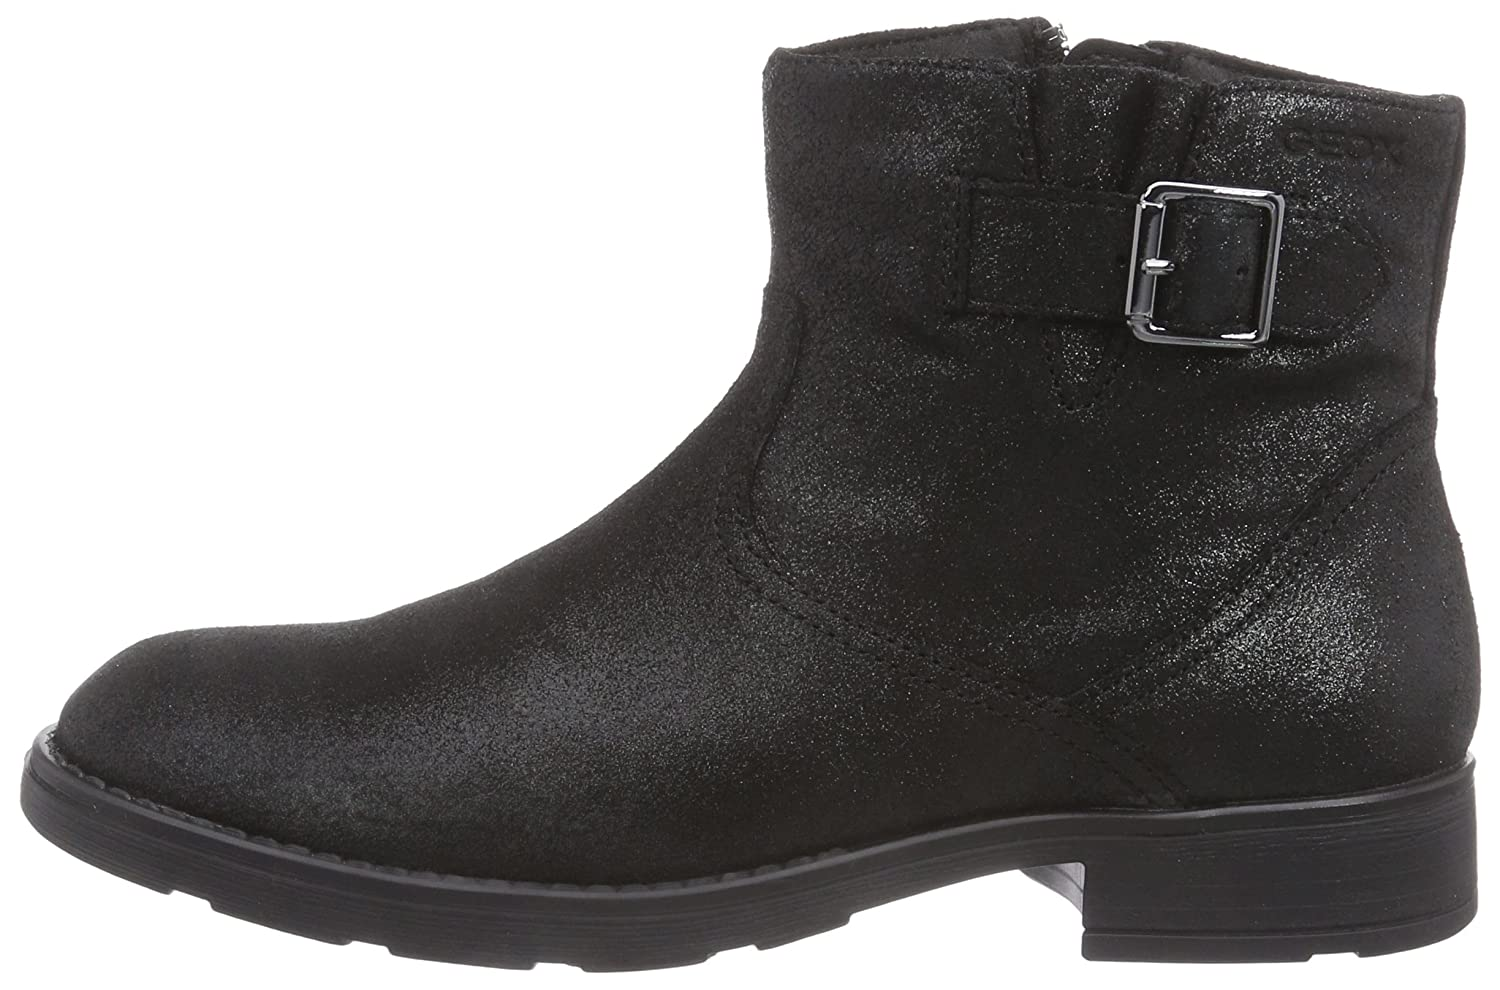 3113be43c90 Geox Jr Sofia a, Girls' Cold lined biker boots short shaft boots and  bootees: Amazon.co.uk: Shoes & Bags